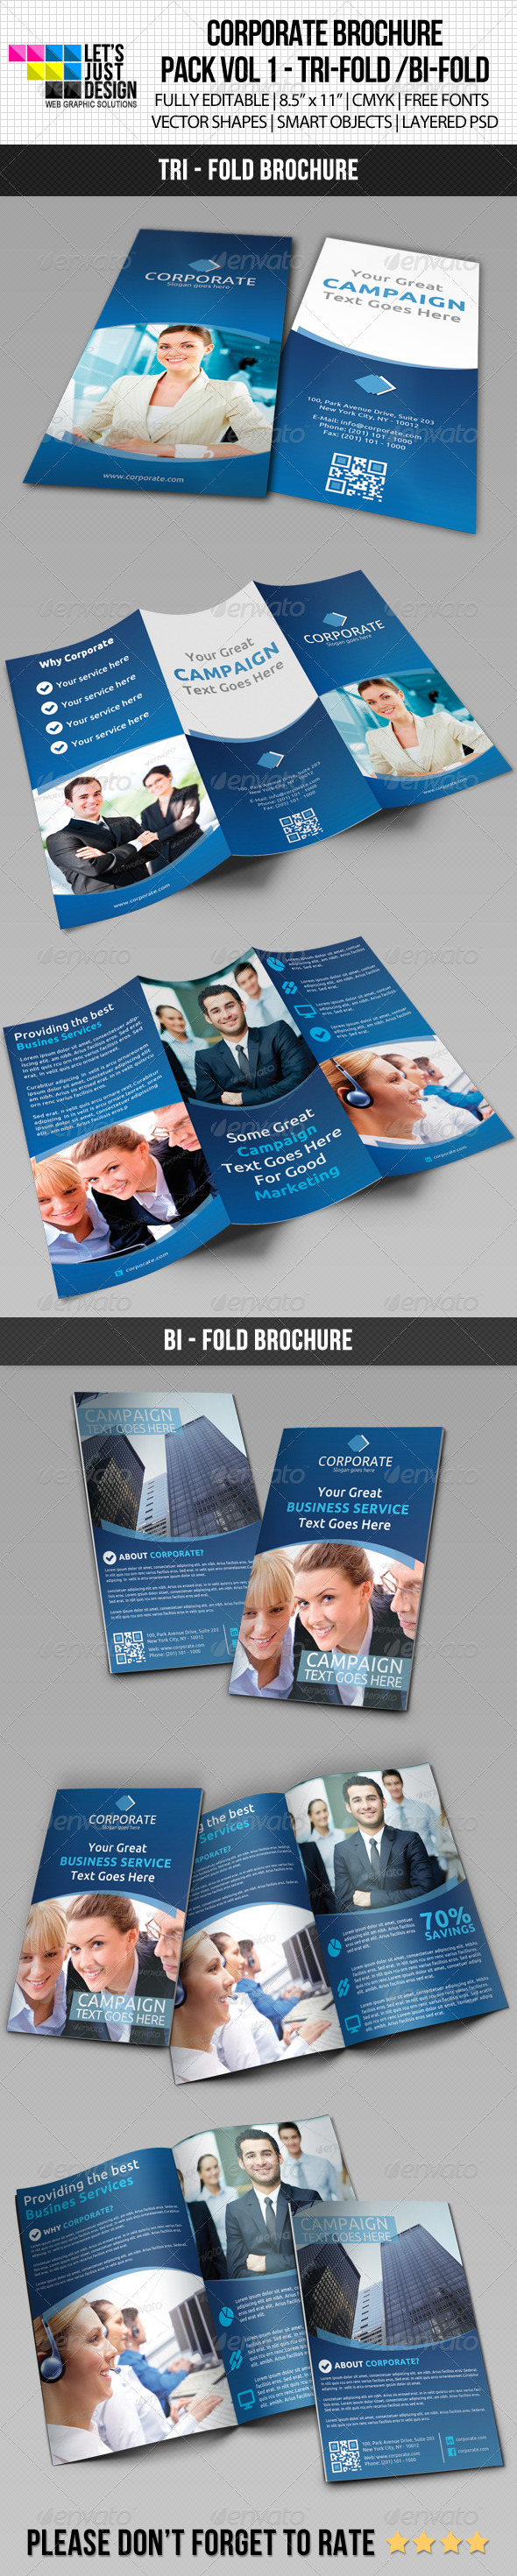 GraphicRiver Corporate Brochure Pack Vol 1 5897224